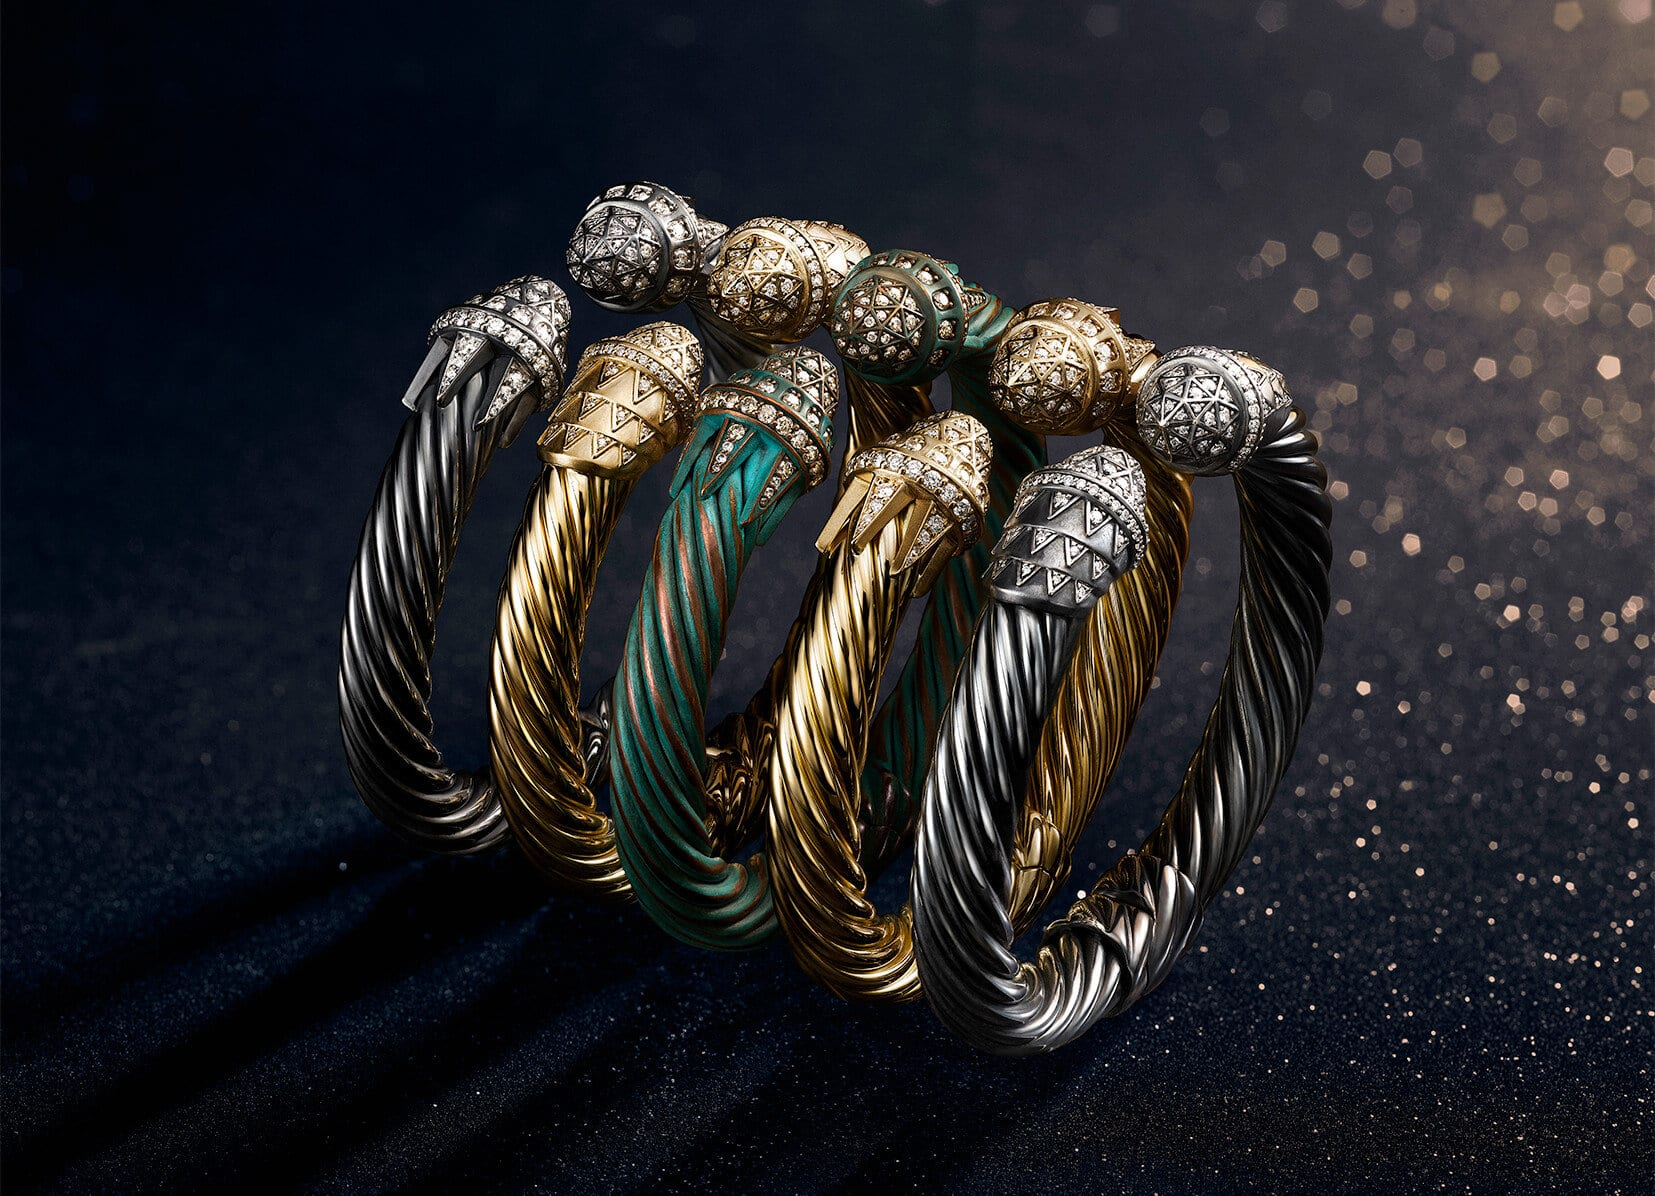 Un plan de Midtown avec une épingle indiquant la boutique phare David Yurman au 5 East 57th Street, New York, NY 10022.